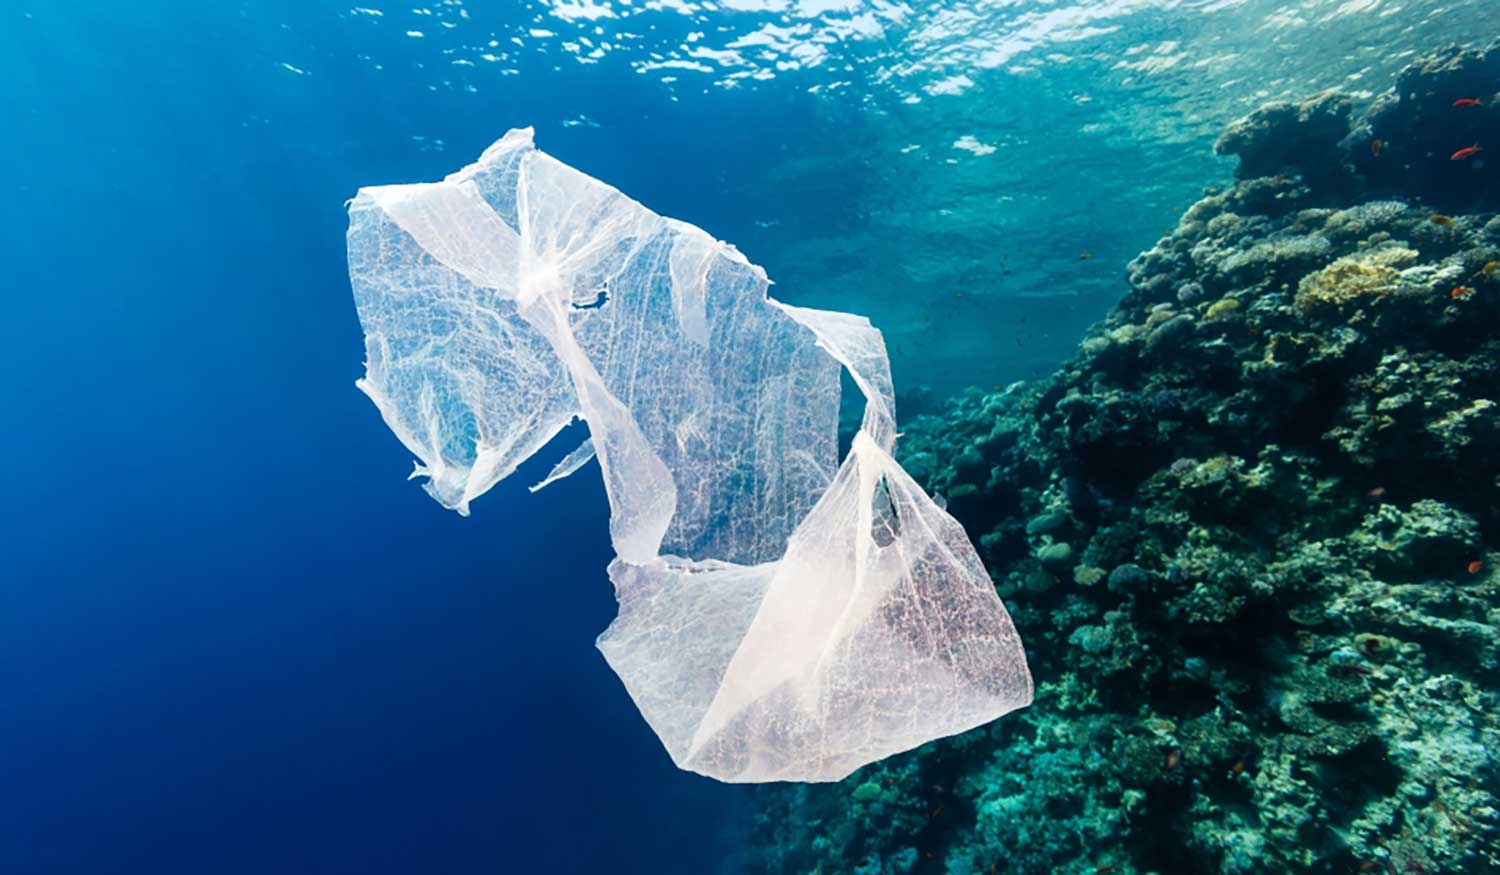 Plastic bag floating in sea.